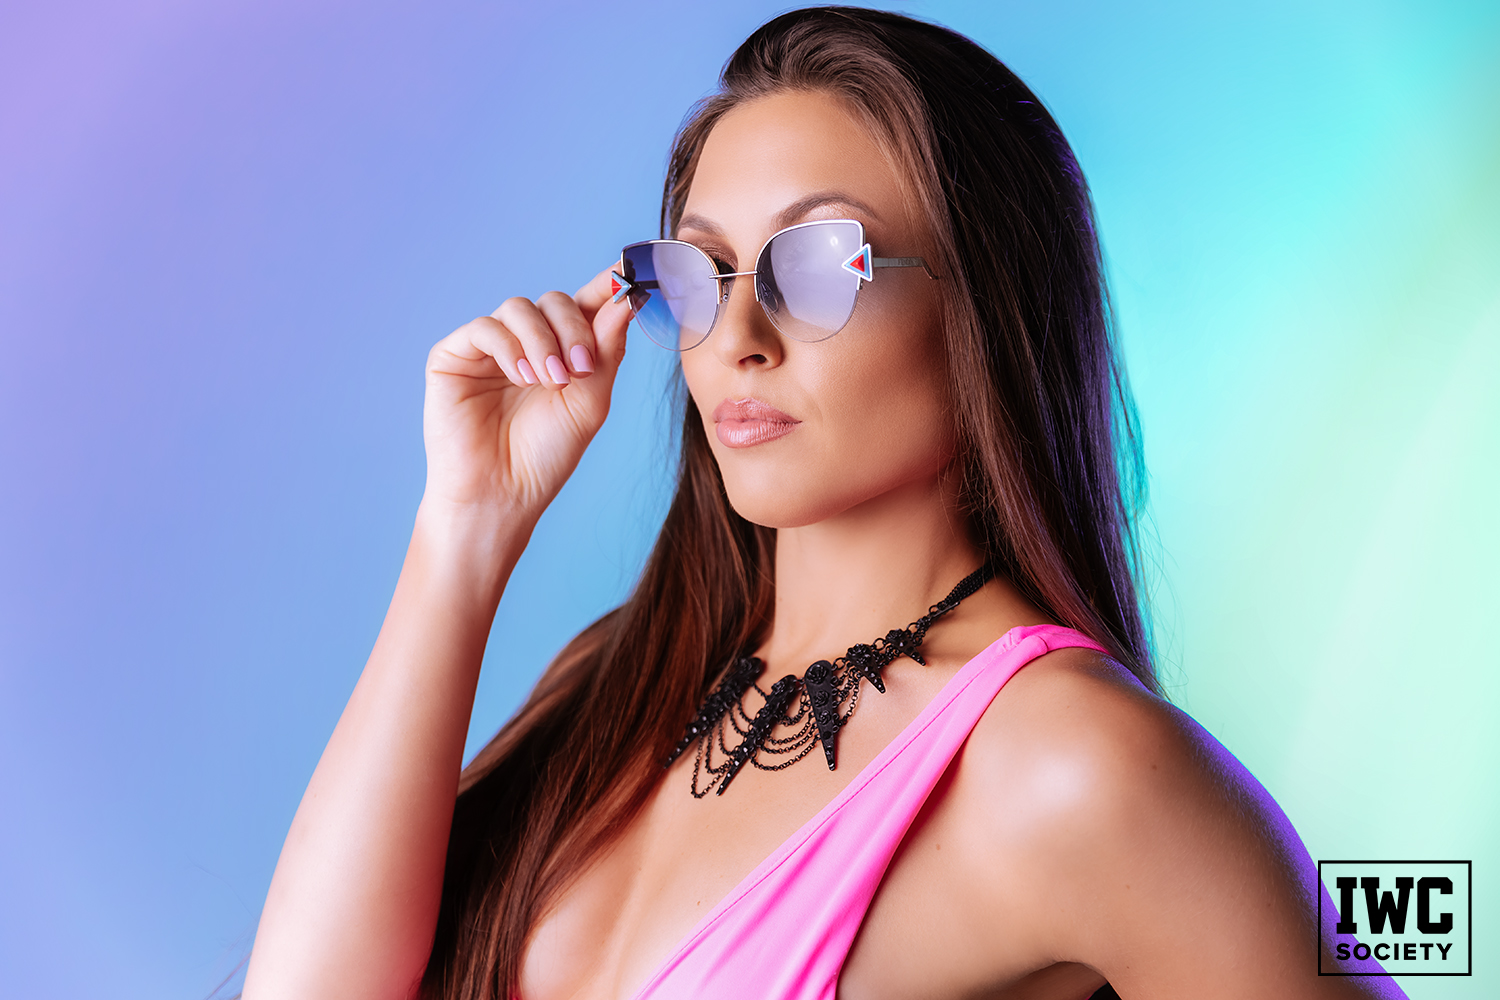 Slave Trainer with pink nails grabbing sunglasses